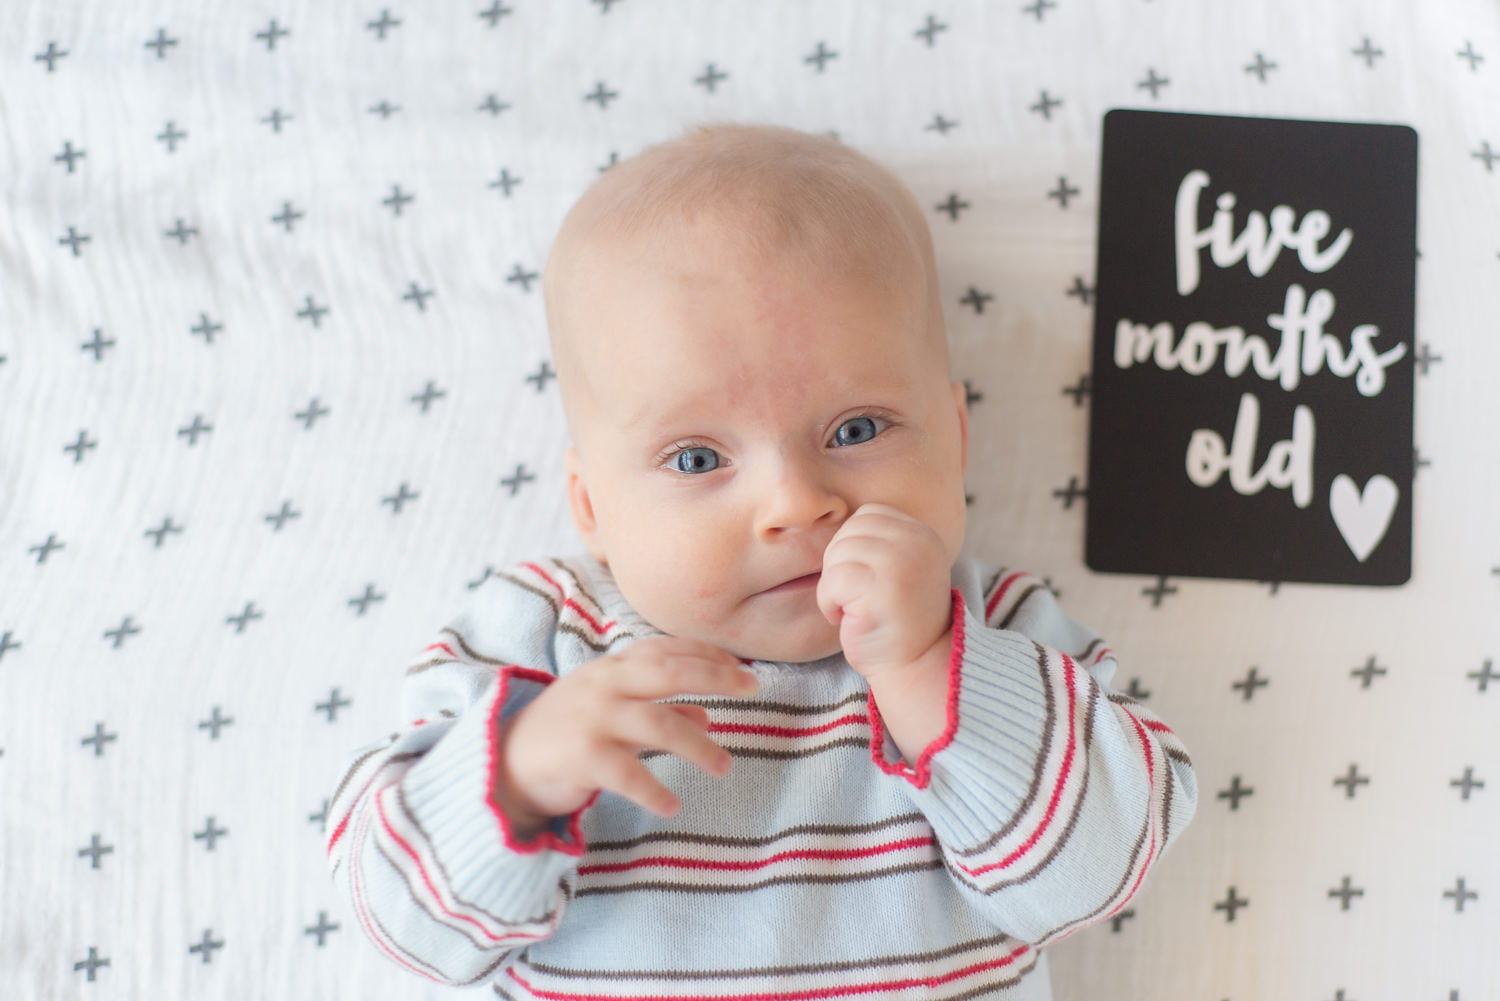 5 months old- munching on those hands